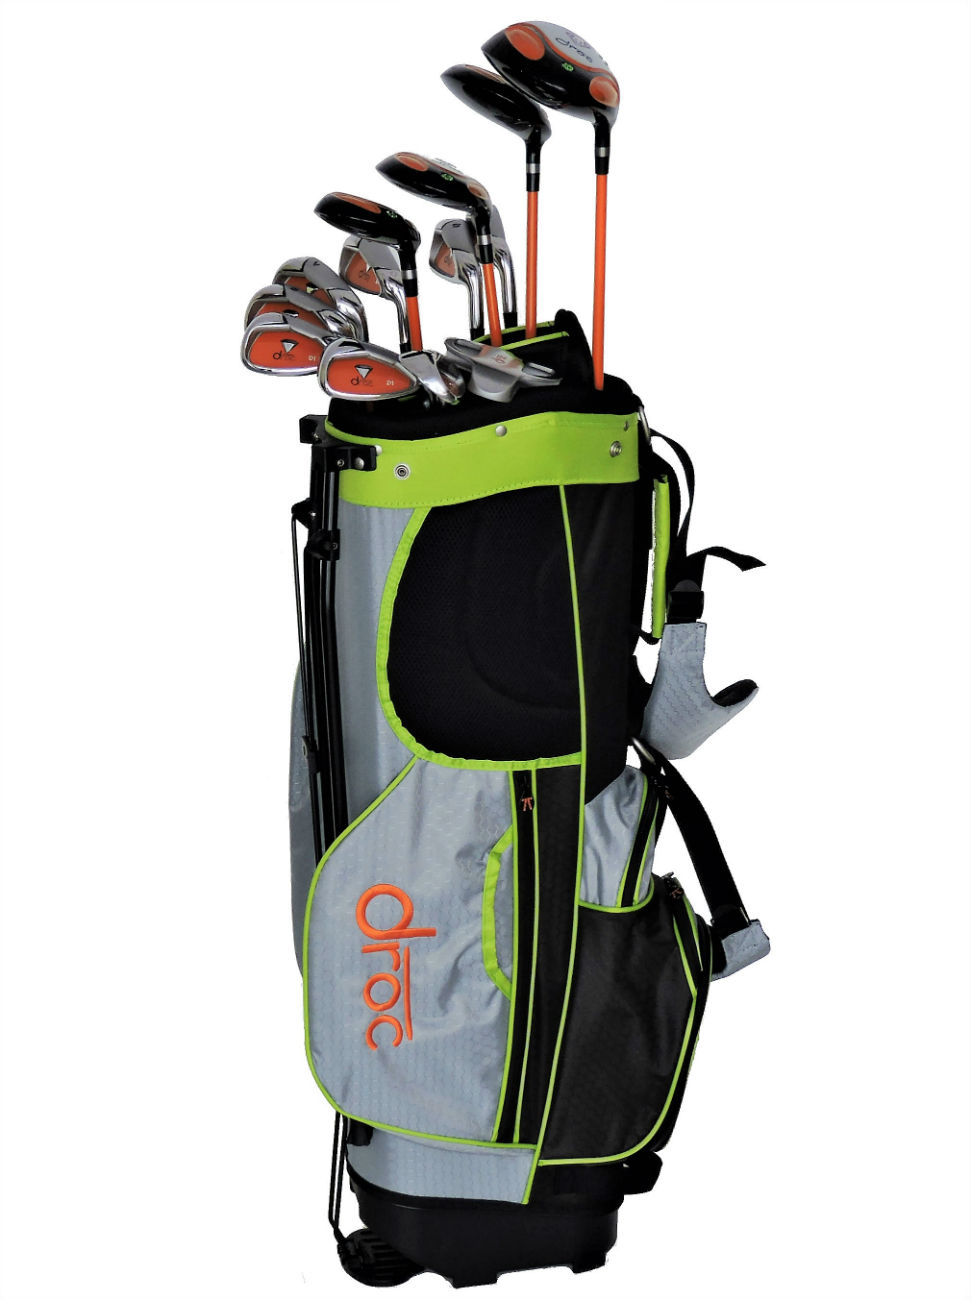 DROC - Dimond Series 13 Pcs Golf Club Set & Golf Bag Age 11-14 Right Handed